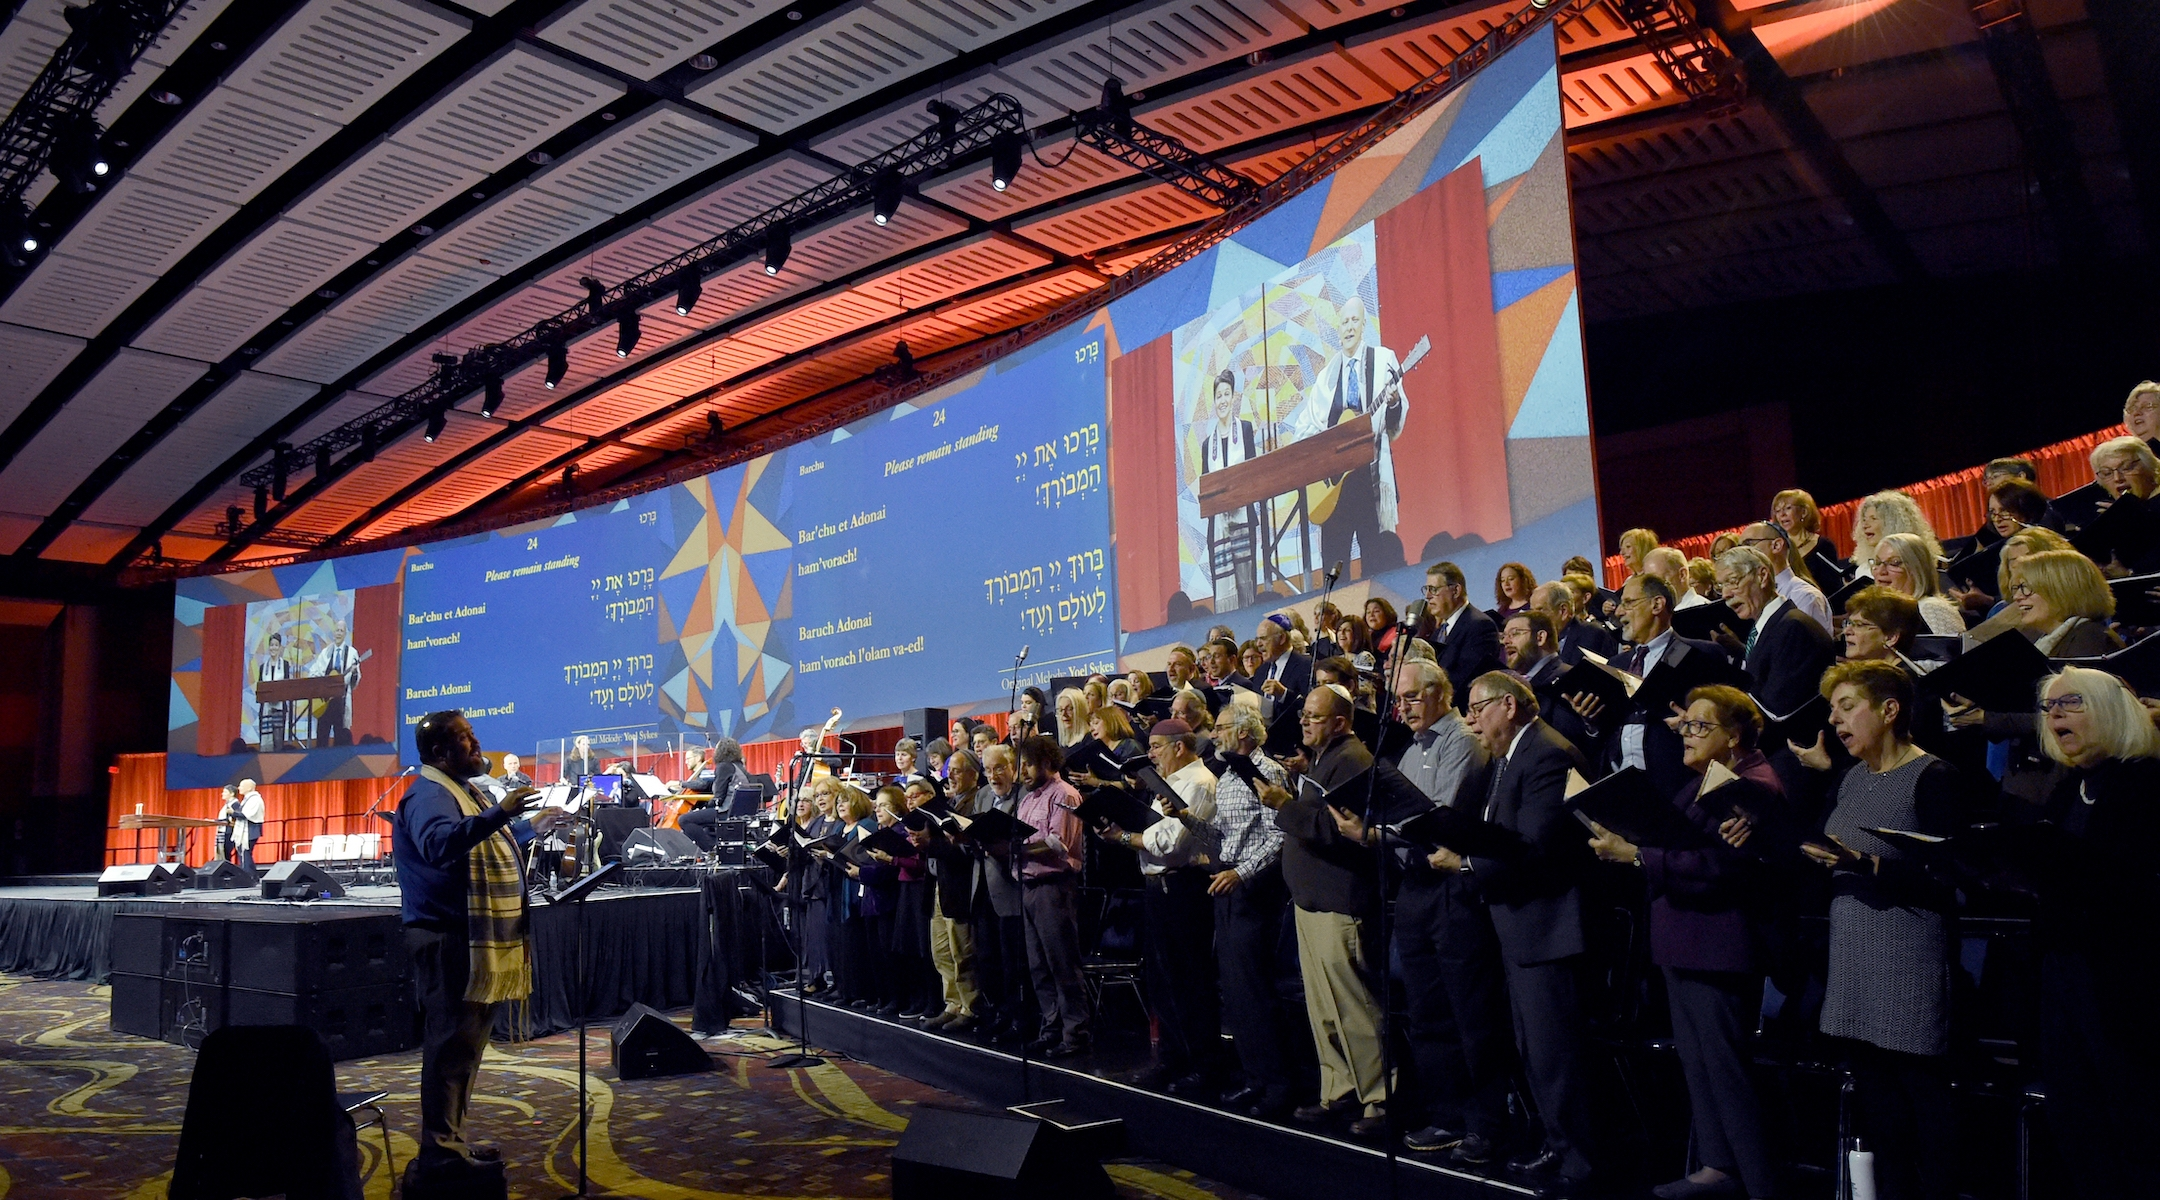 Friday night prayers at the Union for Refrom Judaism Biennial featured a 78-person choir and screens projecting the words of the service. (Rob Dicker/Union for Reform Judaism)